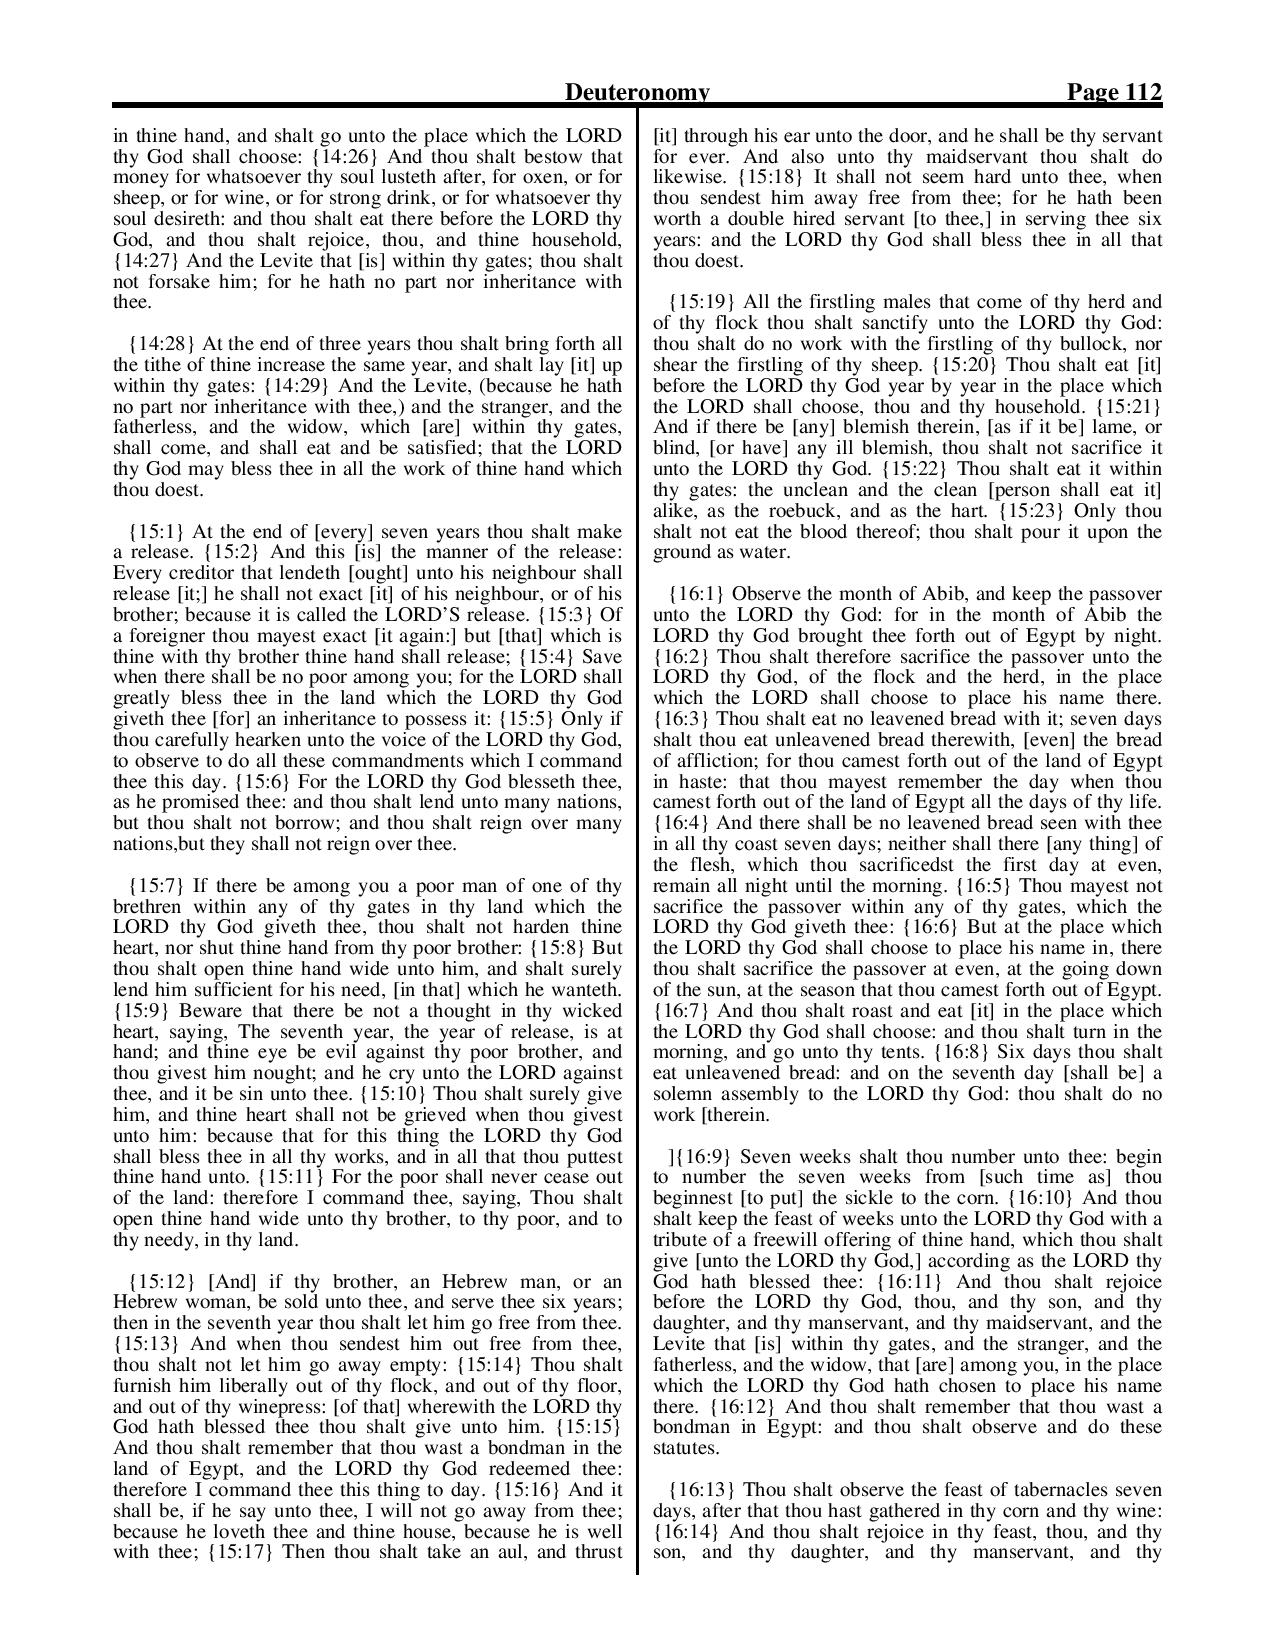 King-James-Bible-KJV-Bible-PDF-page-133